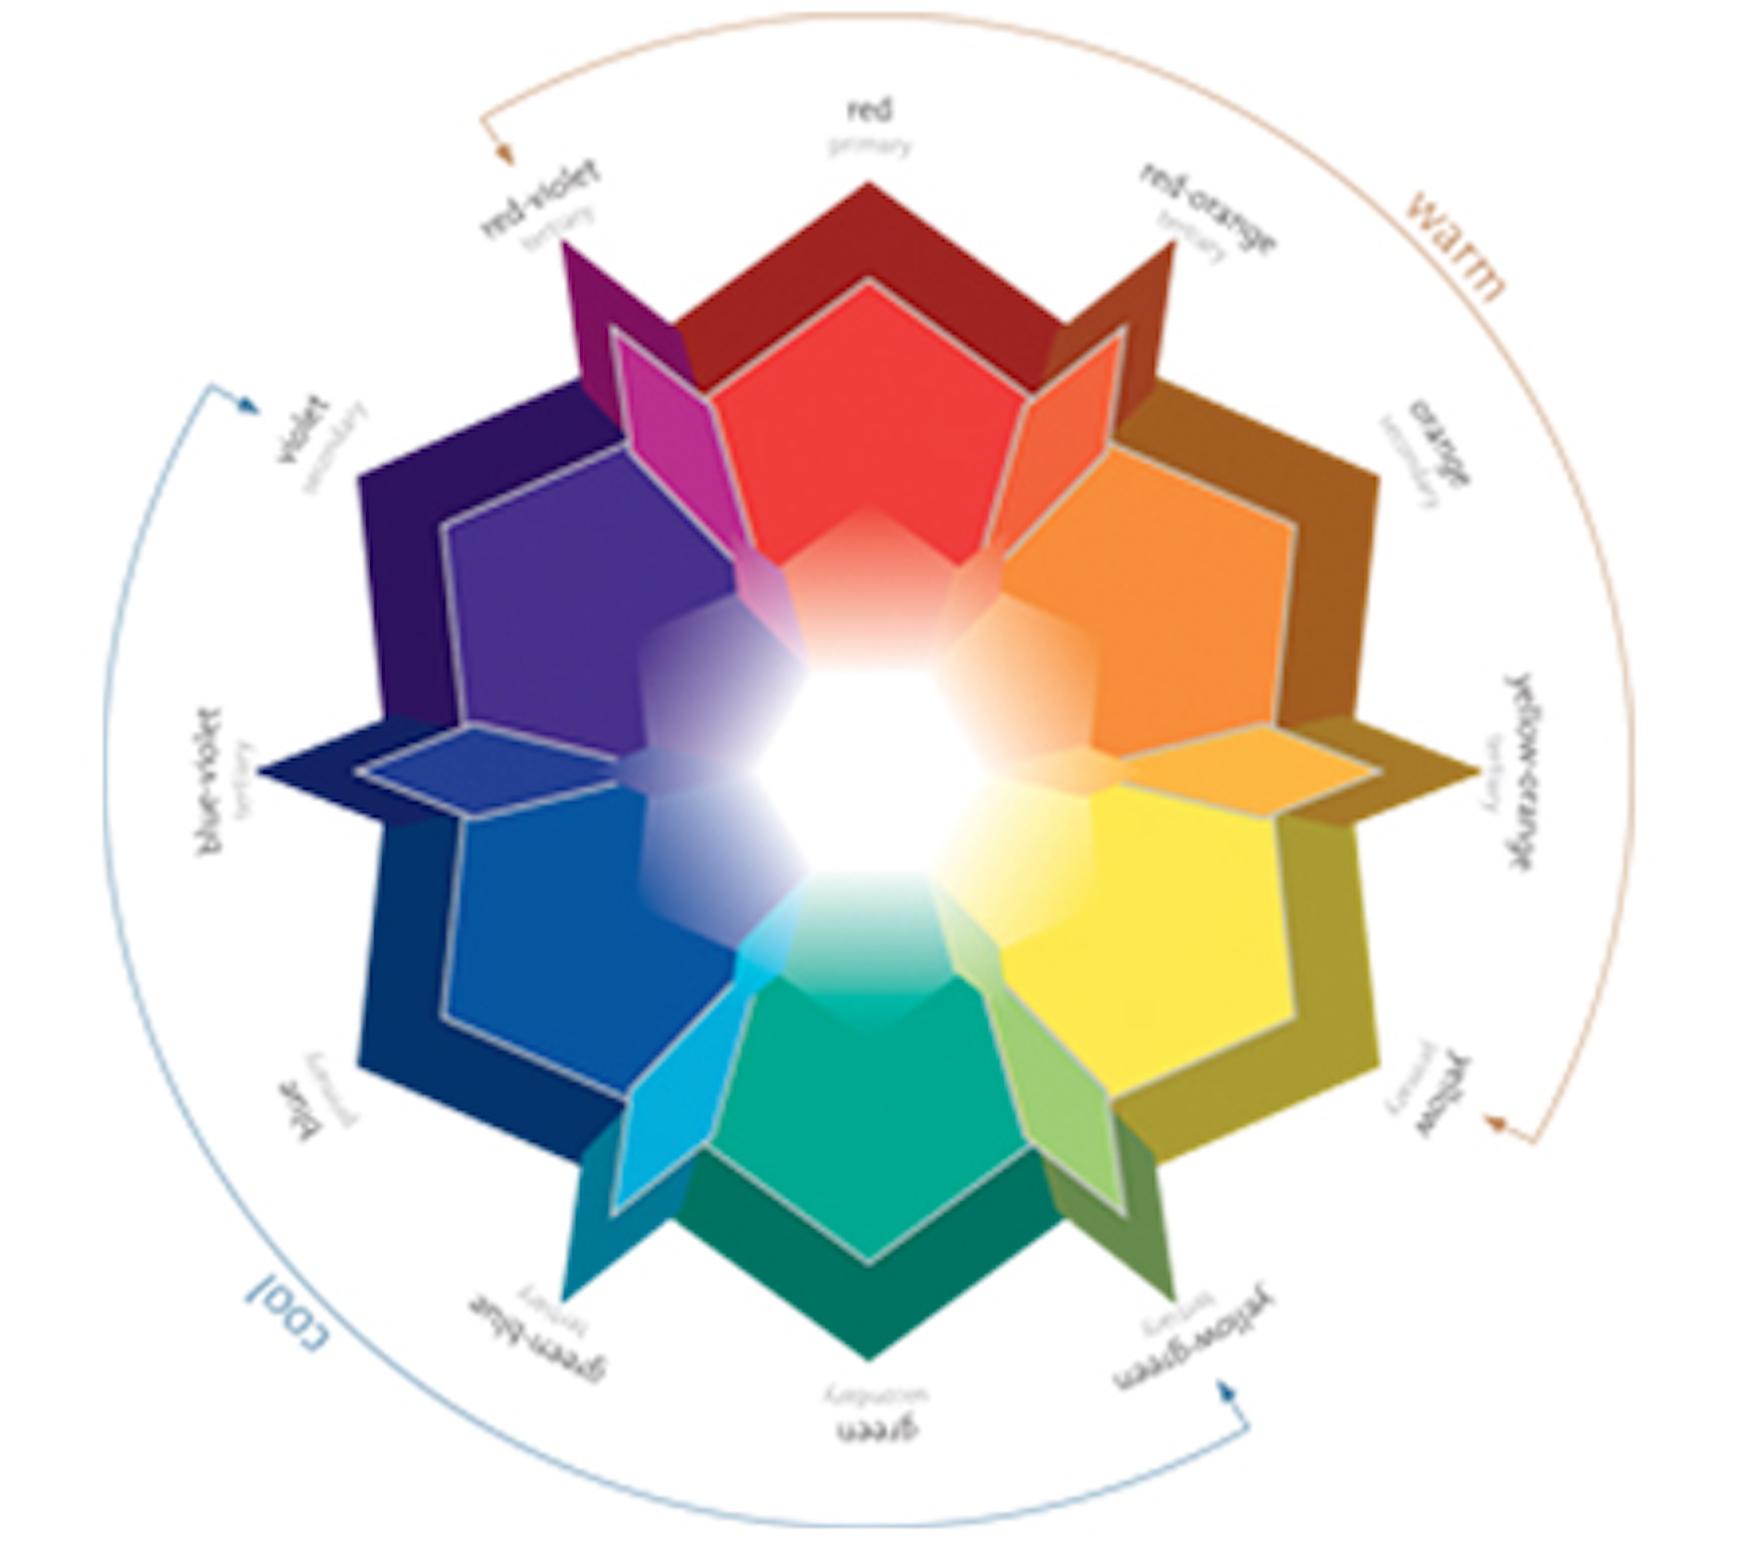 illuminated-color-wheel.png